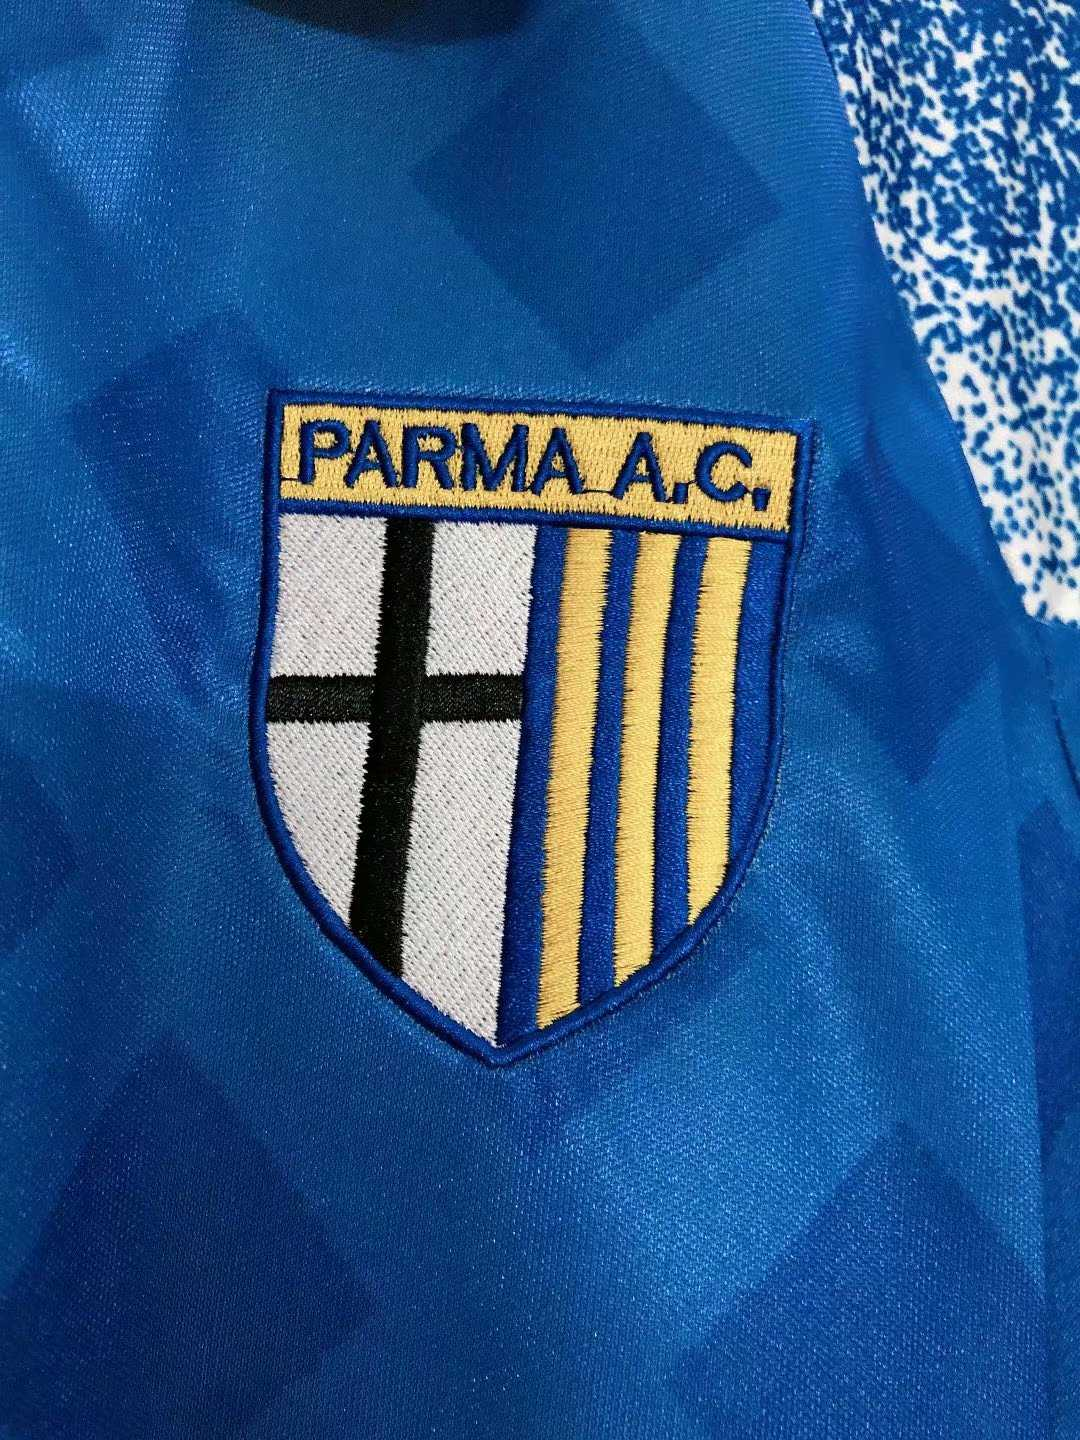 1995-1997 Parma Calcio Retro Away Soccer Jersey Men's